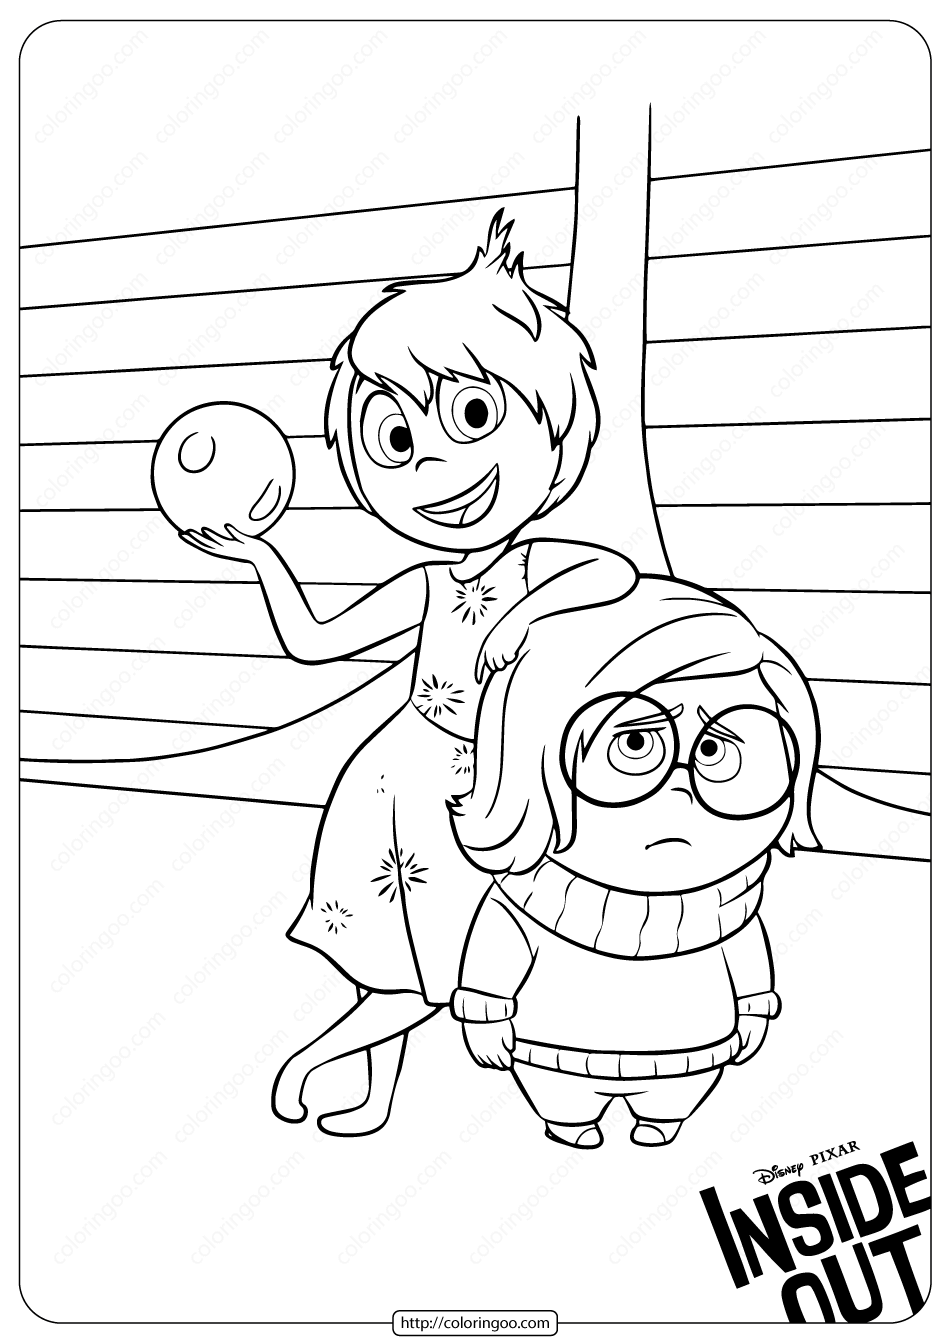 Joy And Sadness Coloring Pages Inside Out Coloring Pages Disney Coloring Pages Coloring Pages